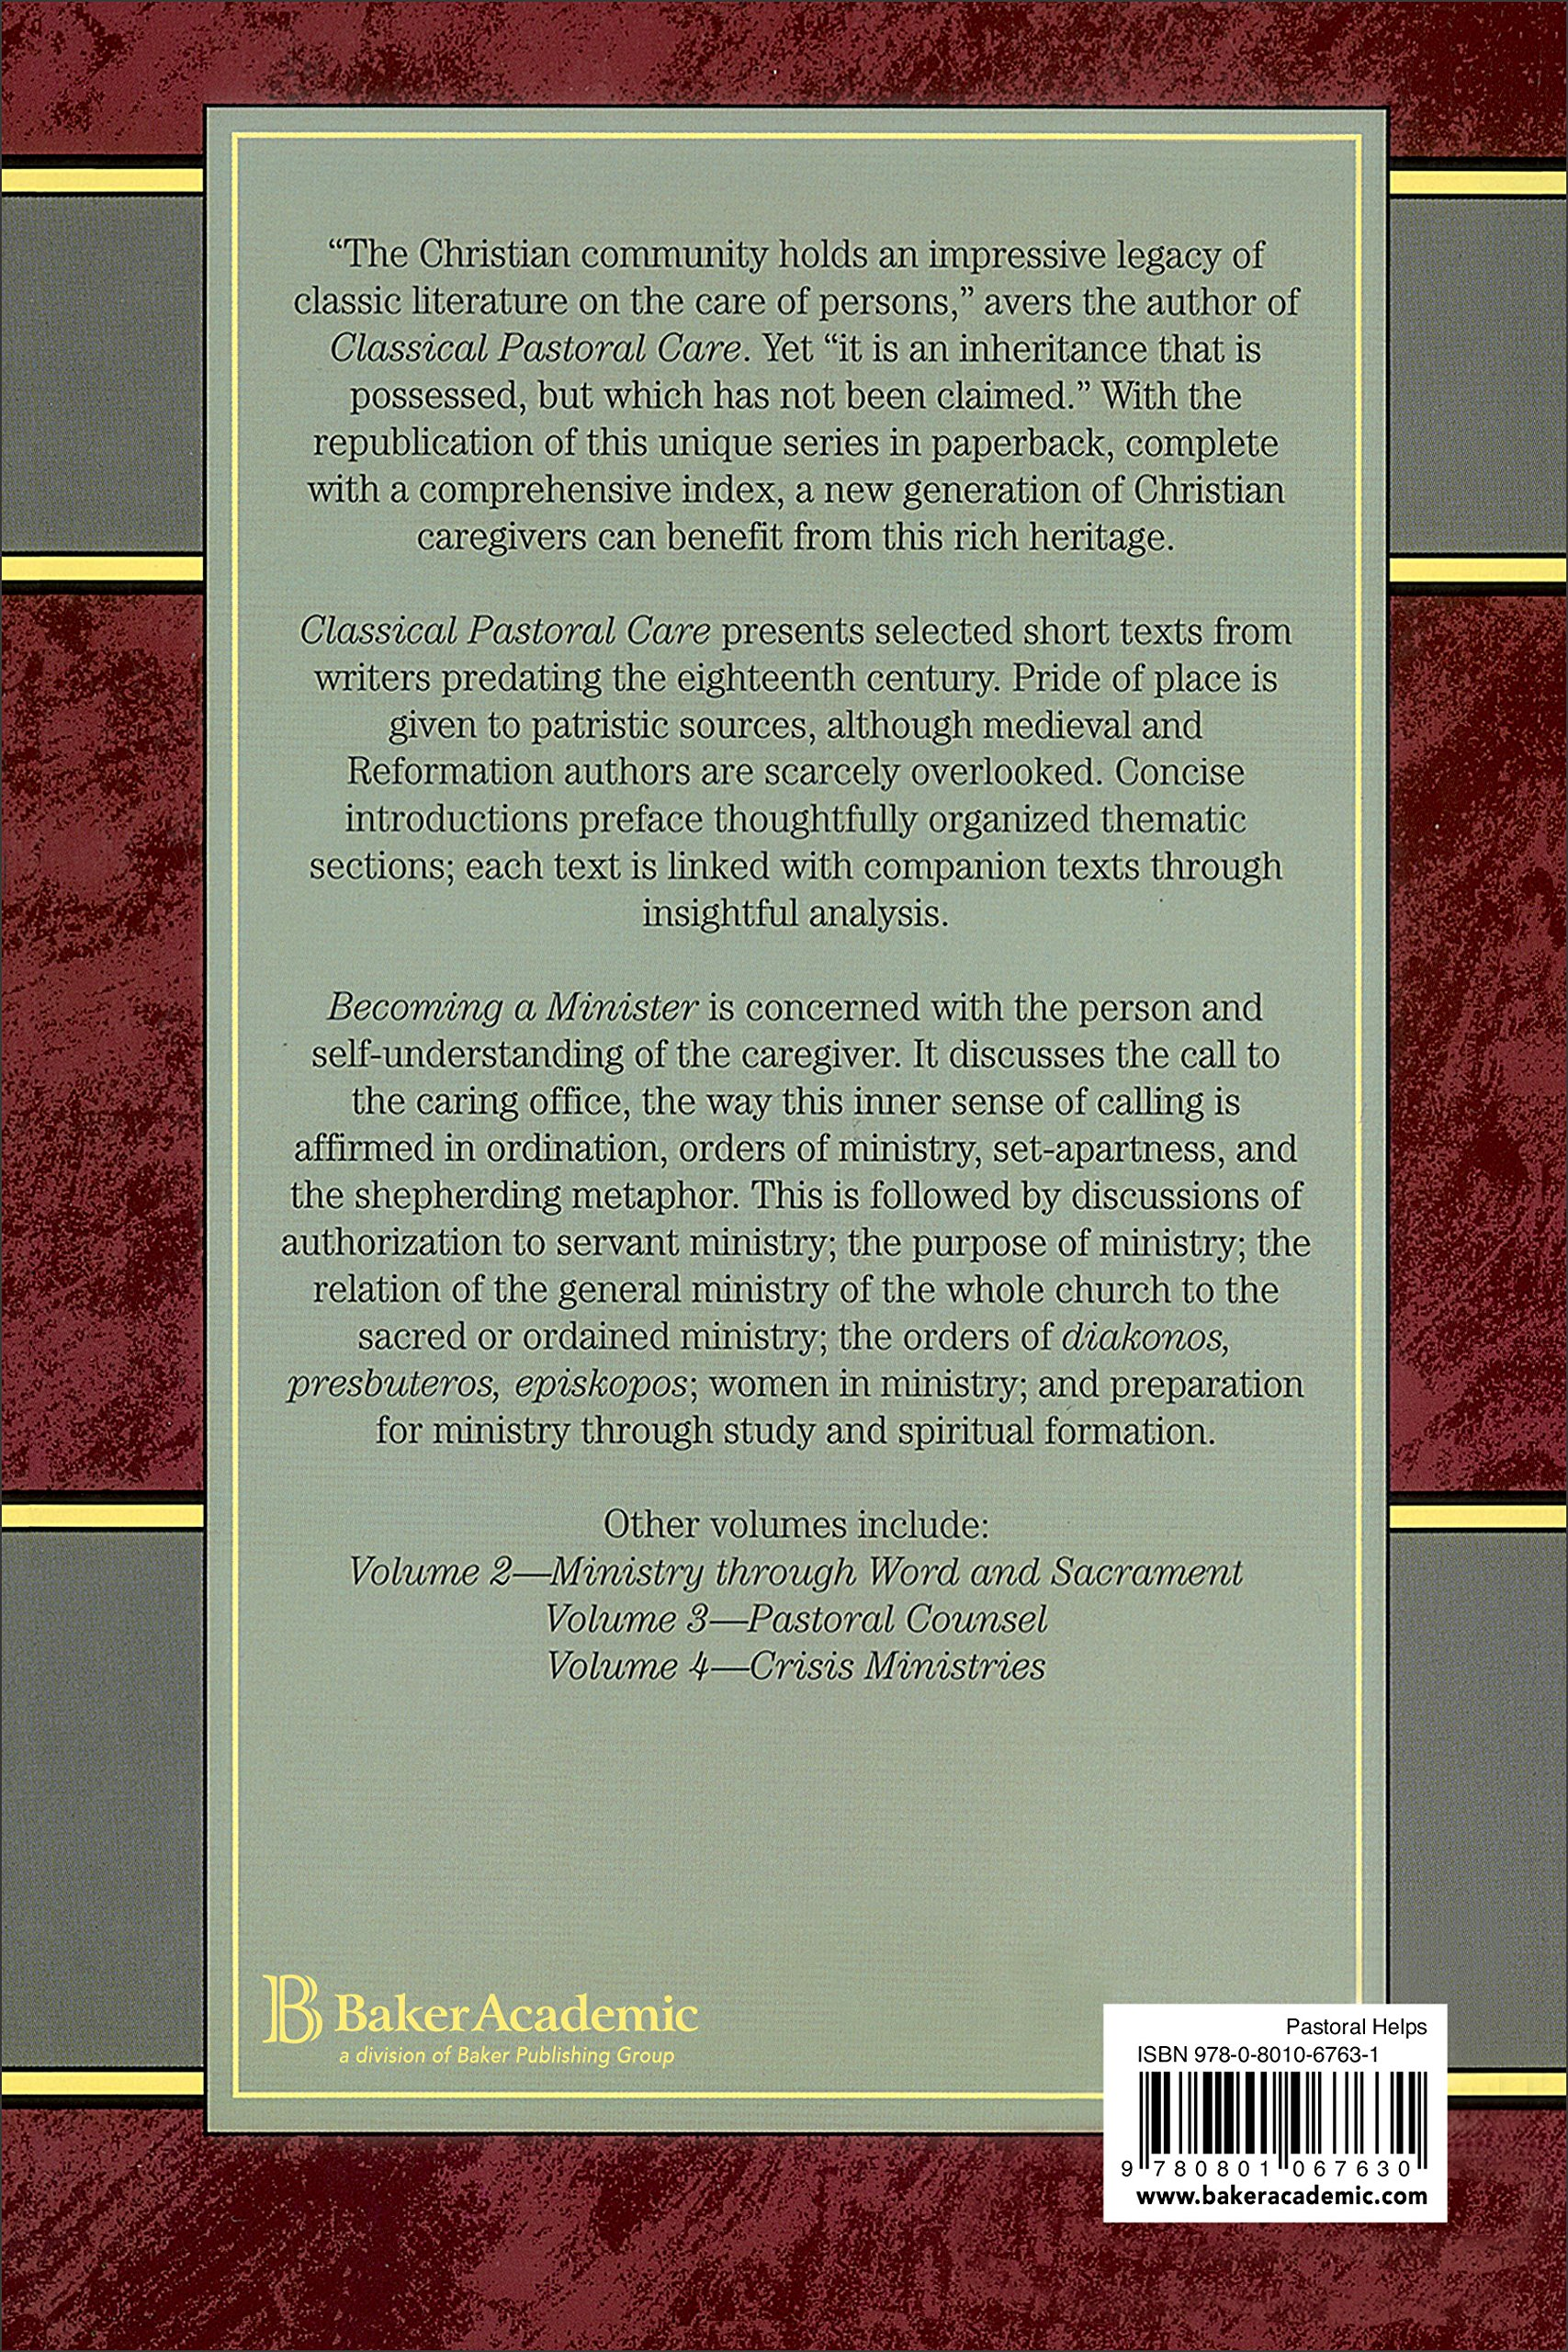 Becoming a minister classical pastoral care series vol 1 thomas becoming a minister classical pastoral care series vol 1 thomas c oden 9780801067631 amazon books fandeluxe Image collections